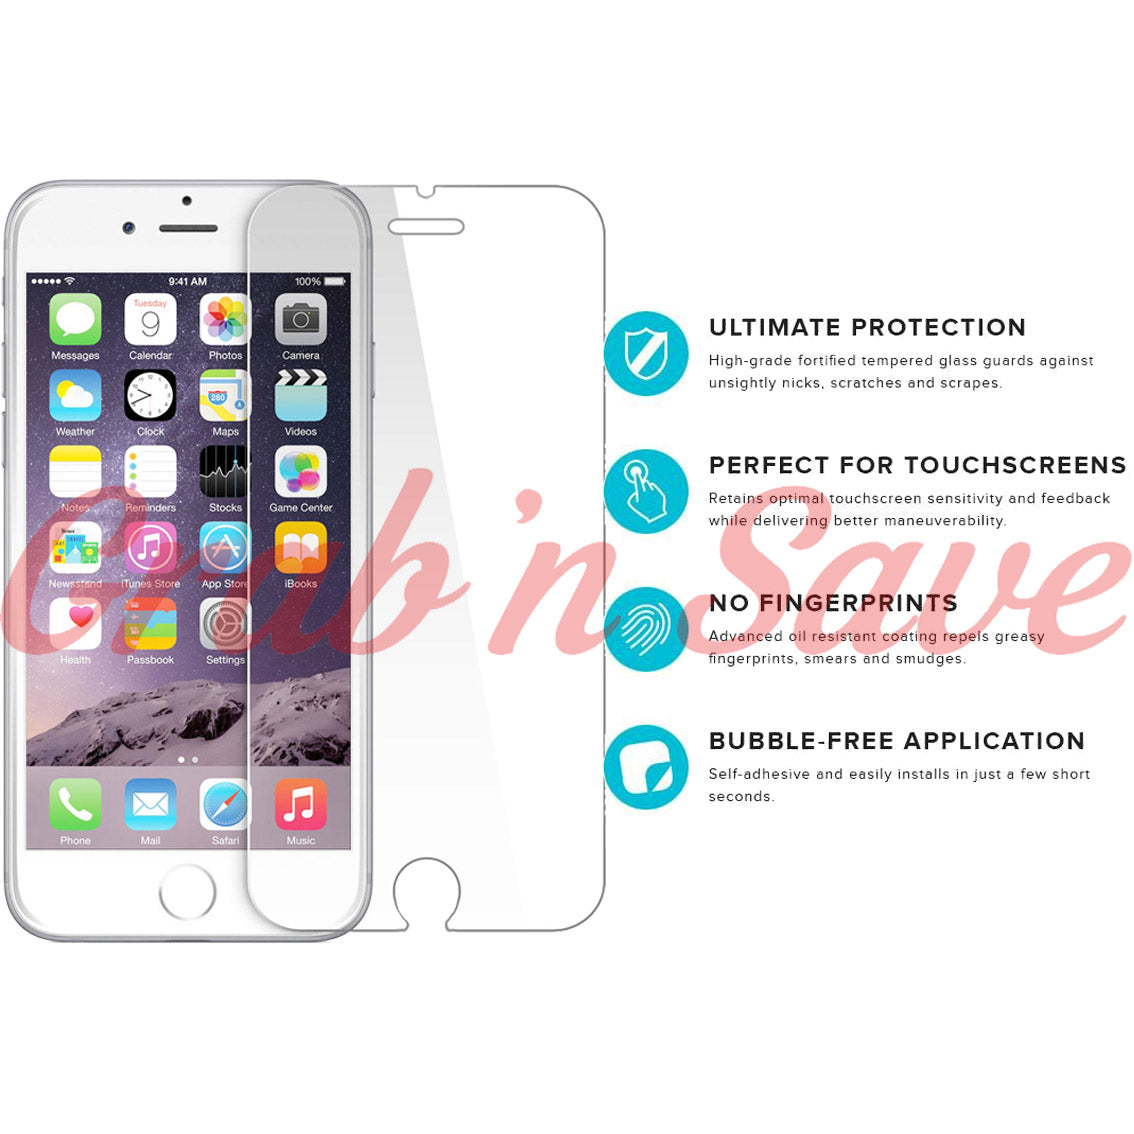 iPhone 6S Plus Screen Protector, Glass Screen Protector, Tempered Glass Screen Protector